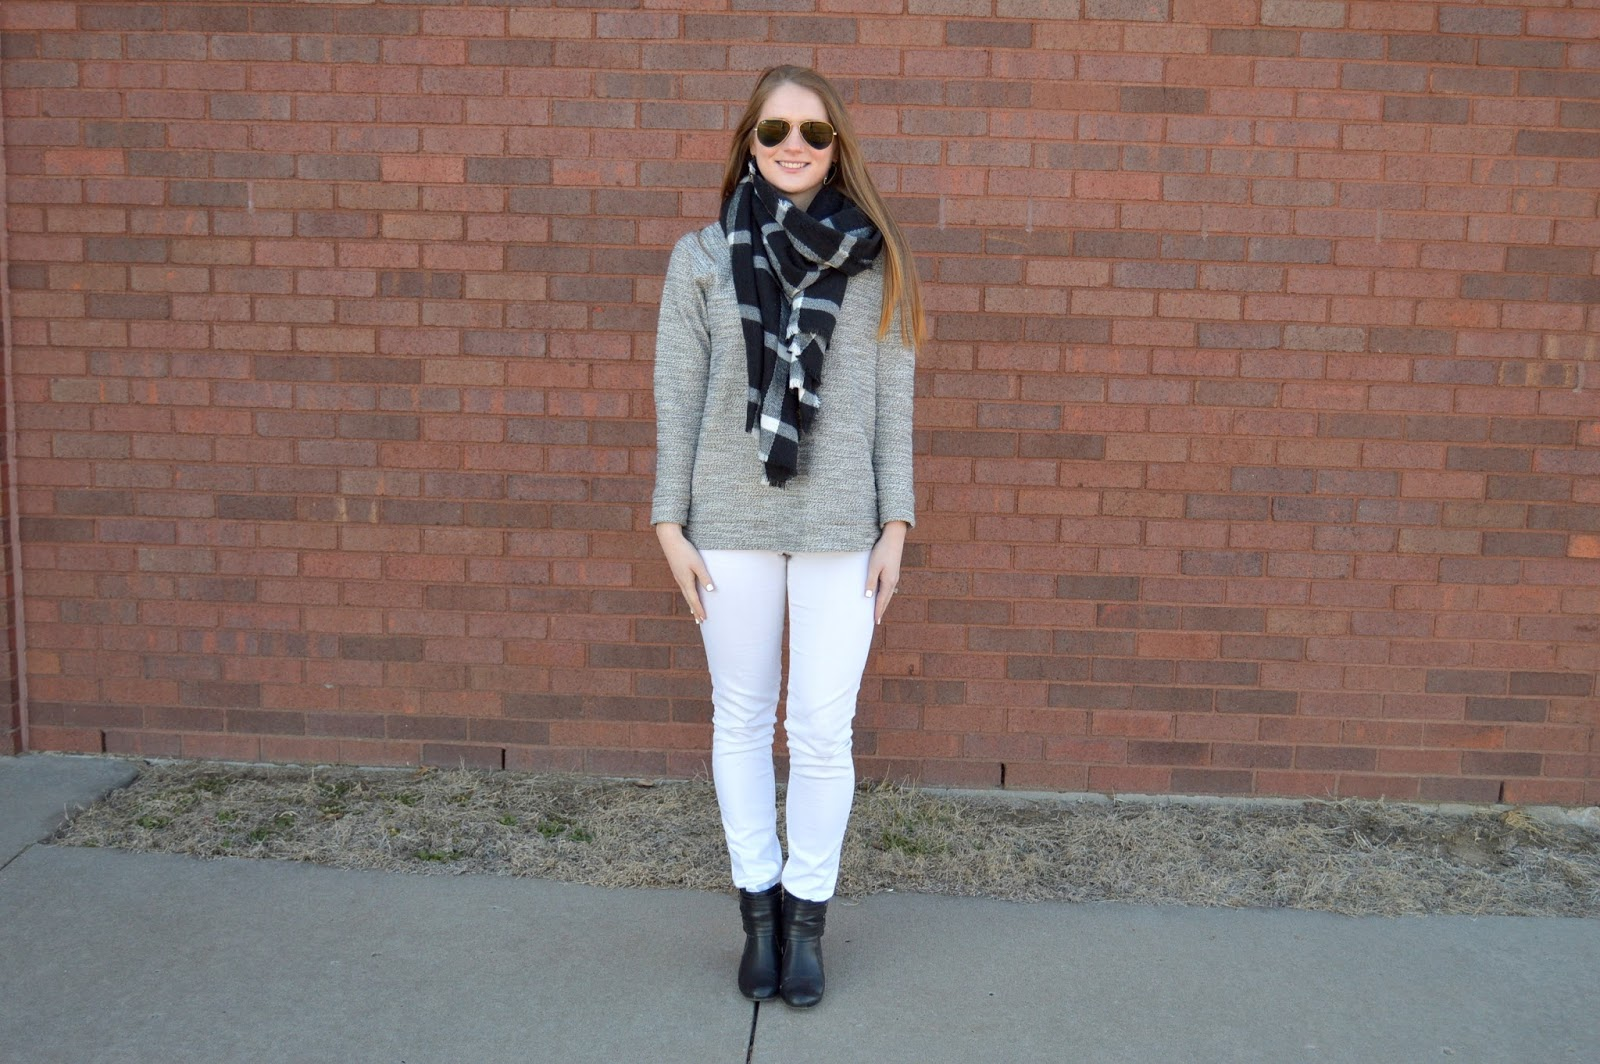 white and gray outfit